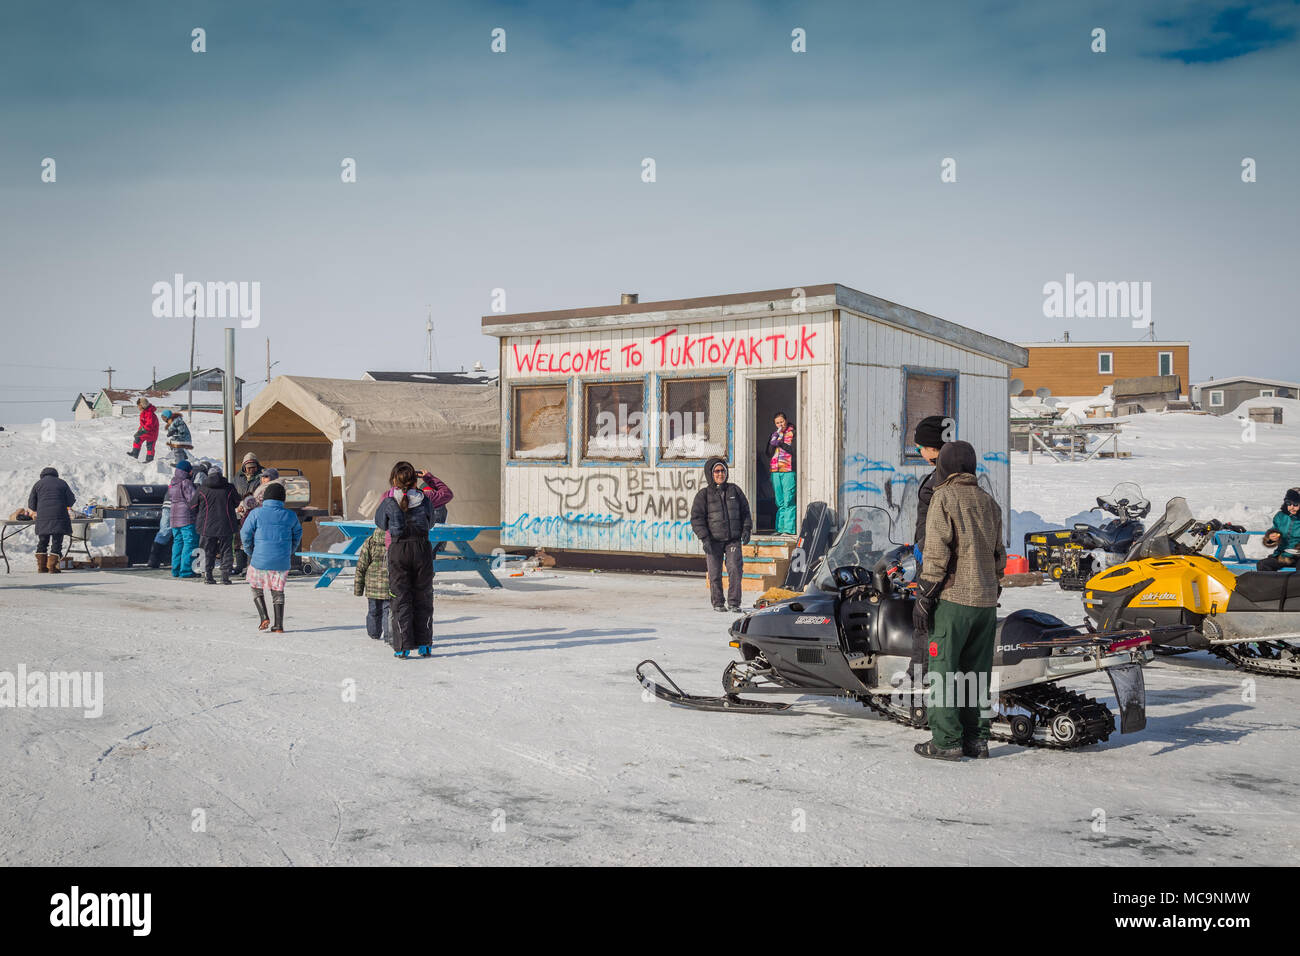 People enjoying the Beluga Jamboree, the spring festival in the arctic hamlet of Tuktoyaktuk, Northwest Territories, Canada. - Stock Image